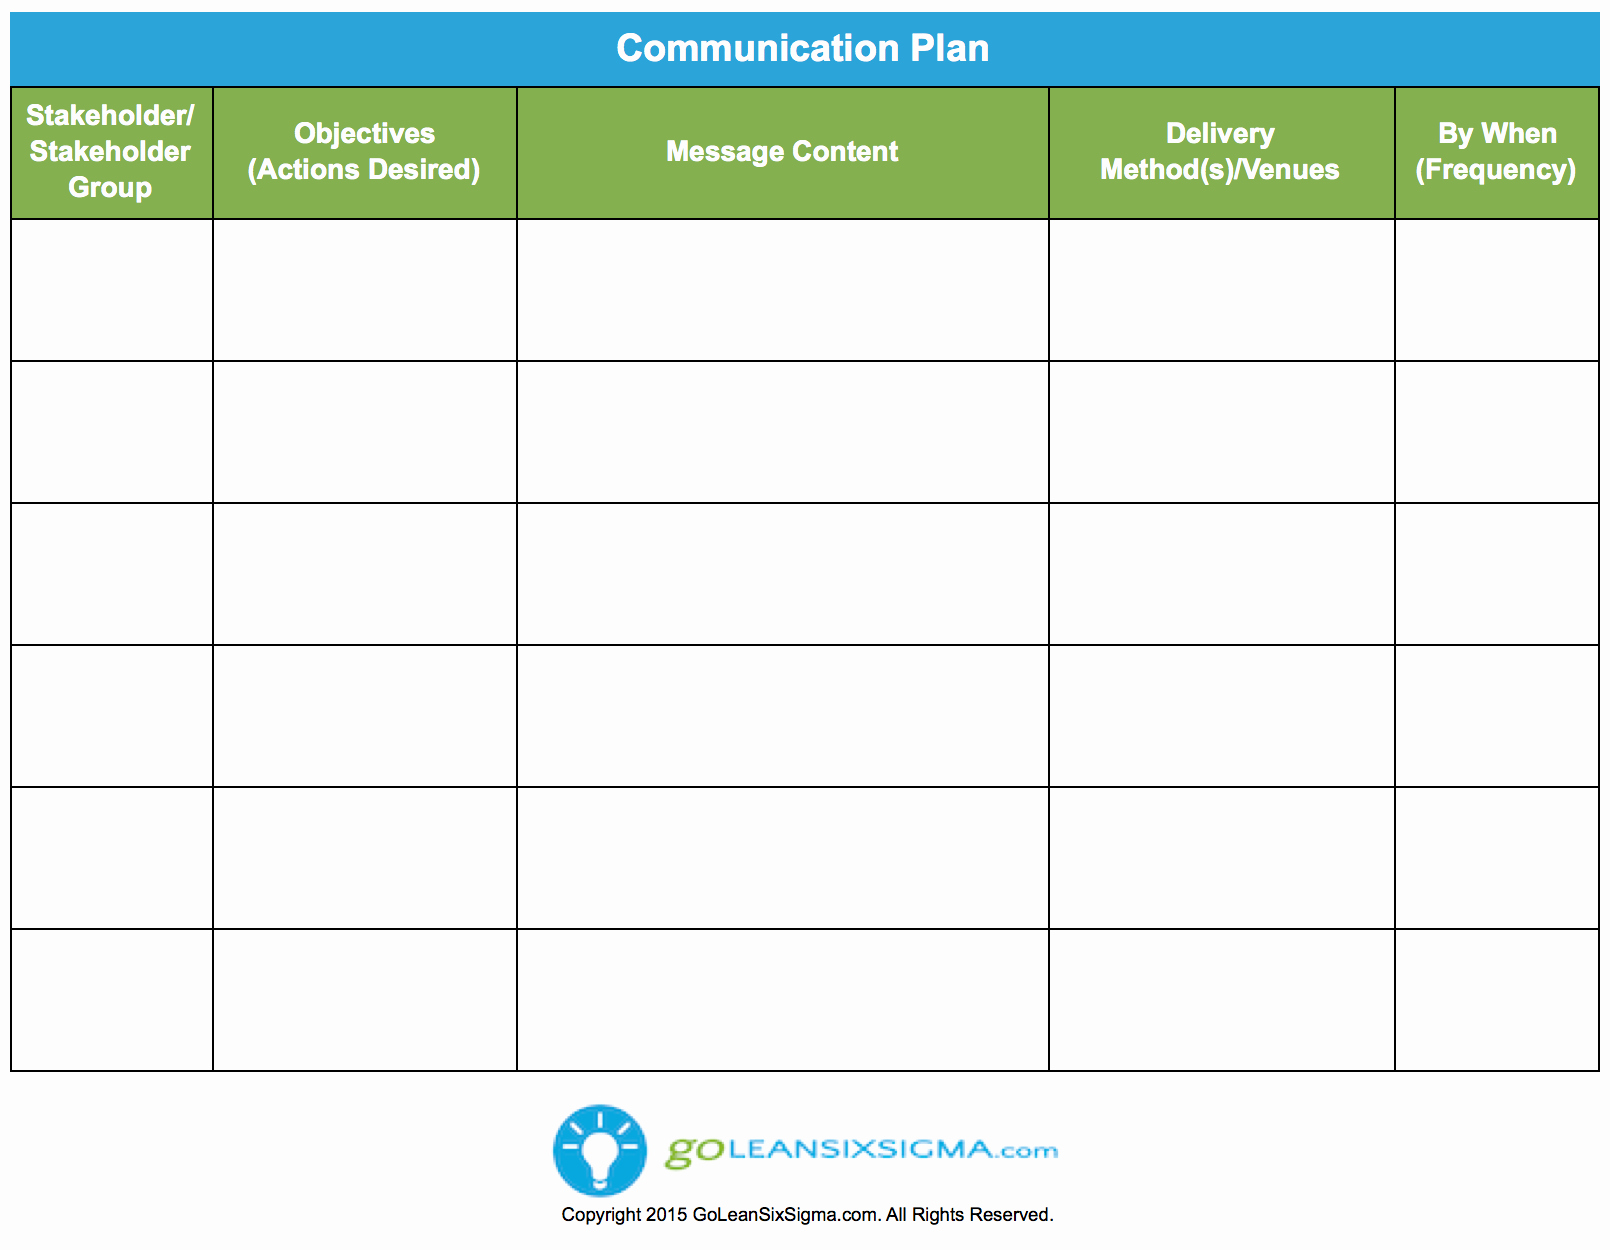 Communication Plan Template Excel Fresh Pilot Checklist Goleansixsigma